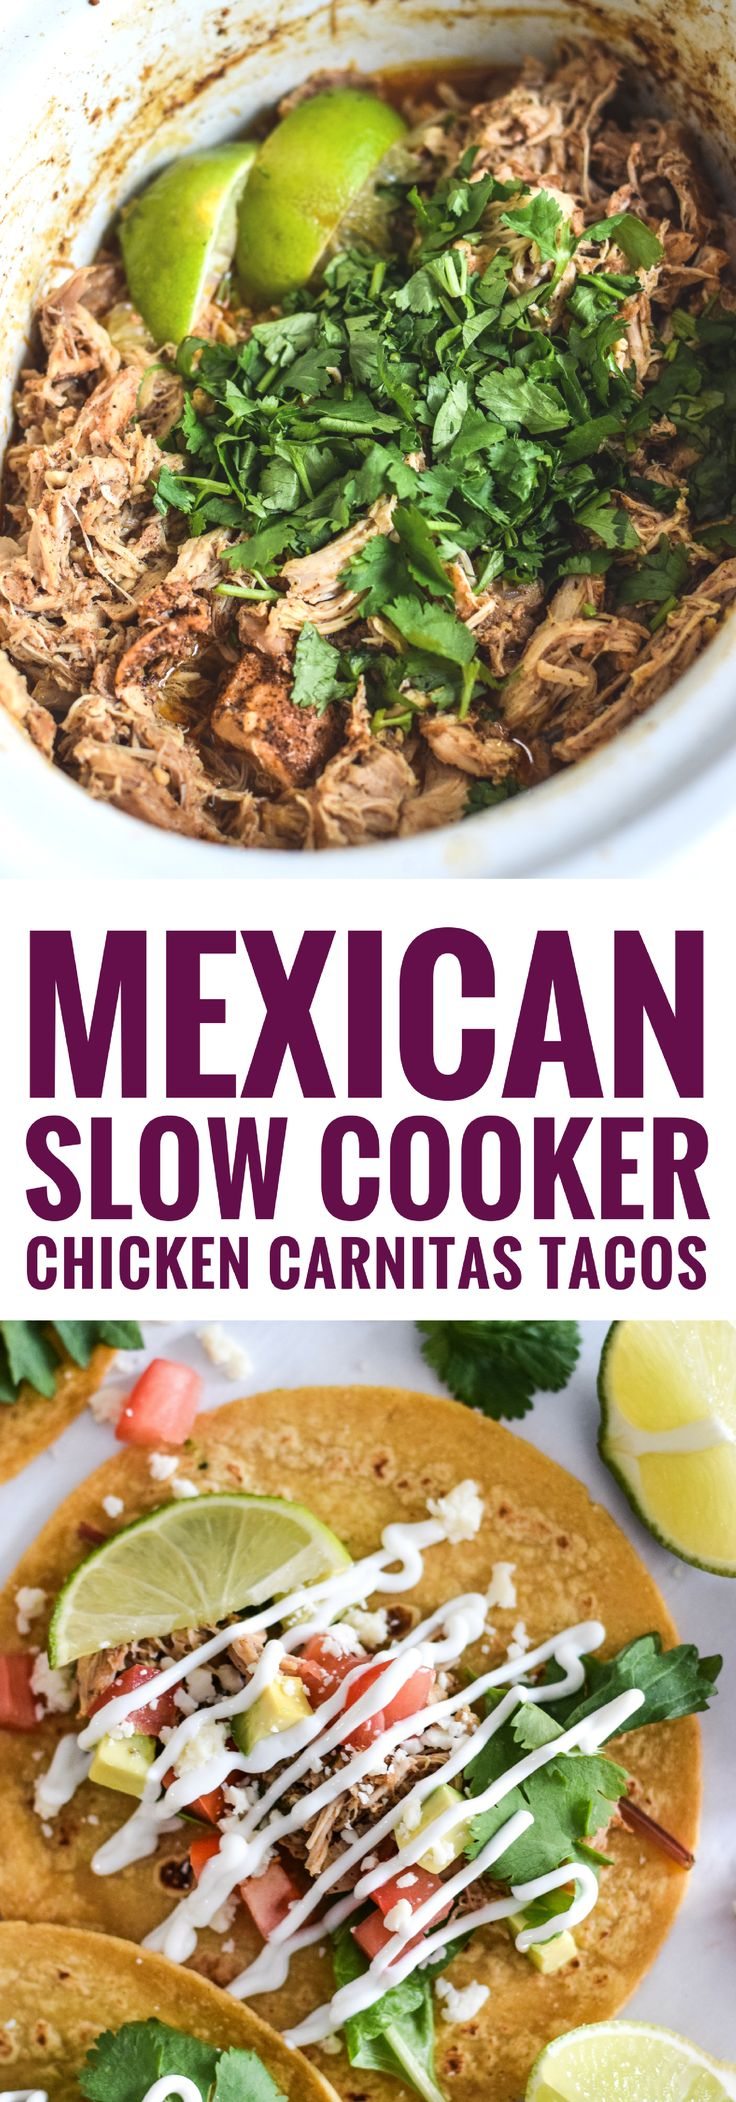 Seasoned with cumin, garlic, chili powder, lime juice, and cilantro, these Mexican Slow Cooker Chicken Carnitas Tacos are the perfect dinner for any night of the week. (gluten free, paleo friendly)